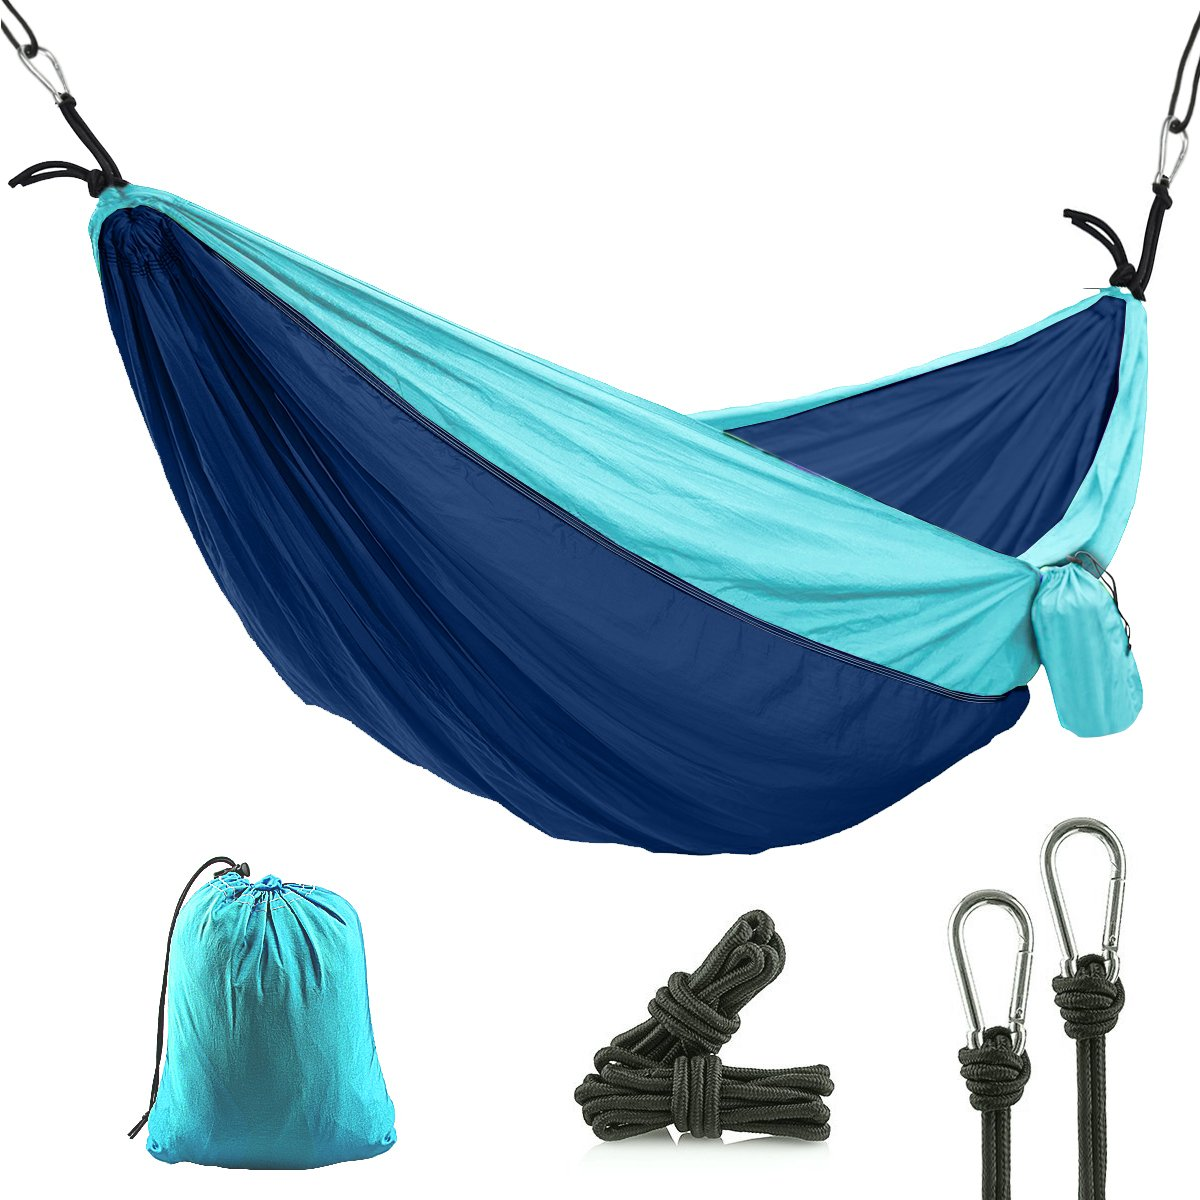 CUNXIA Camping Hammock, Single Outdoor Travel Hammock, Portable Nylon Parachute Hammock with Tree Straps for Camping Hiking Backpacking